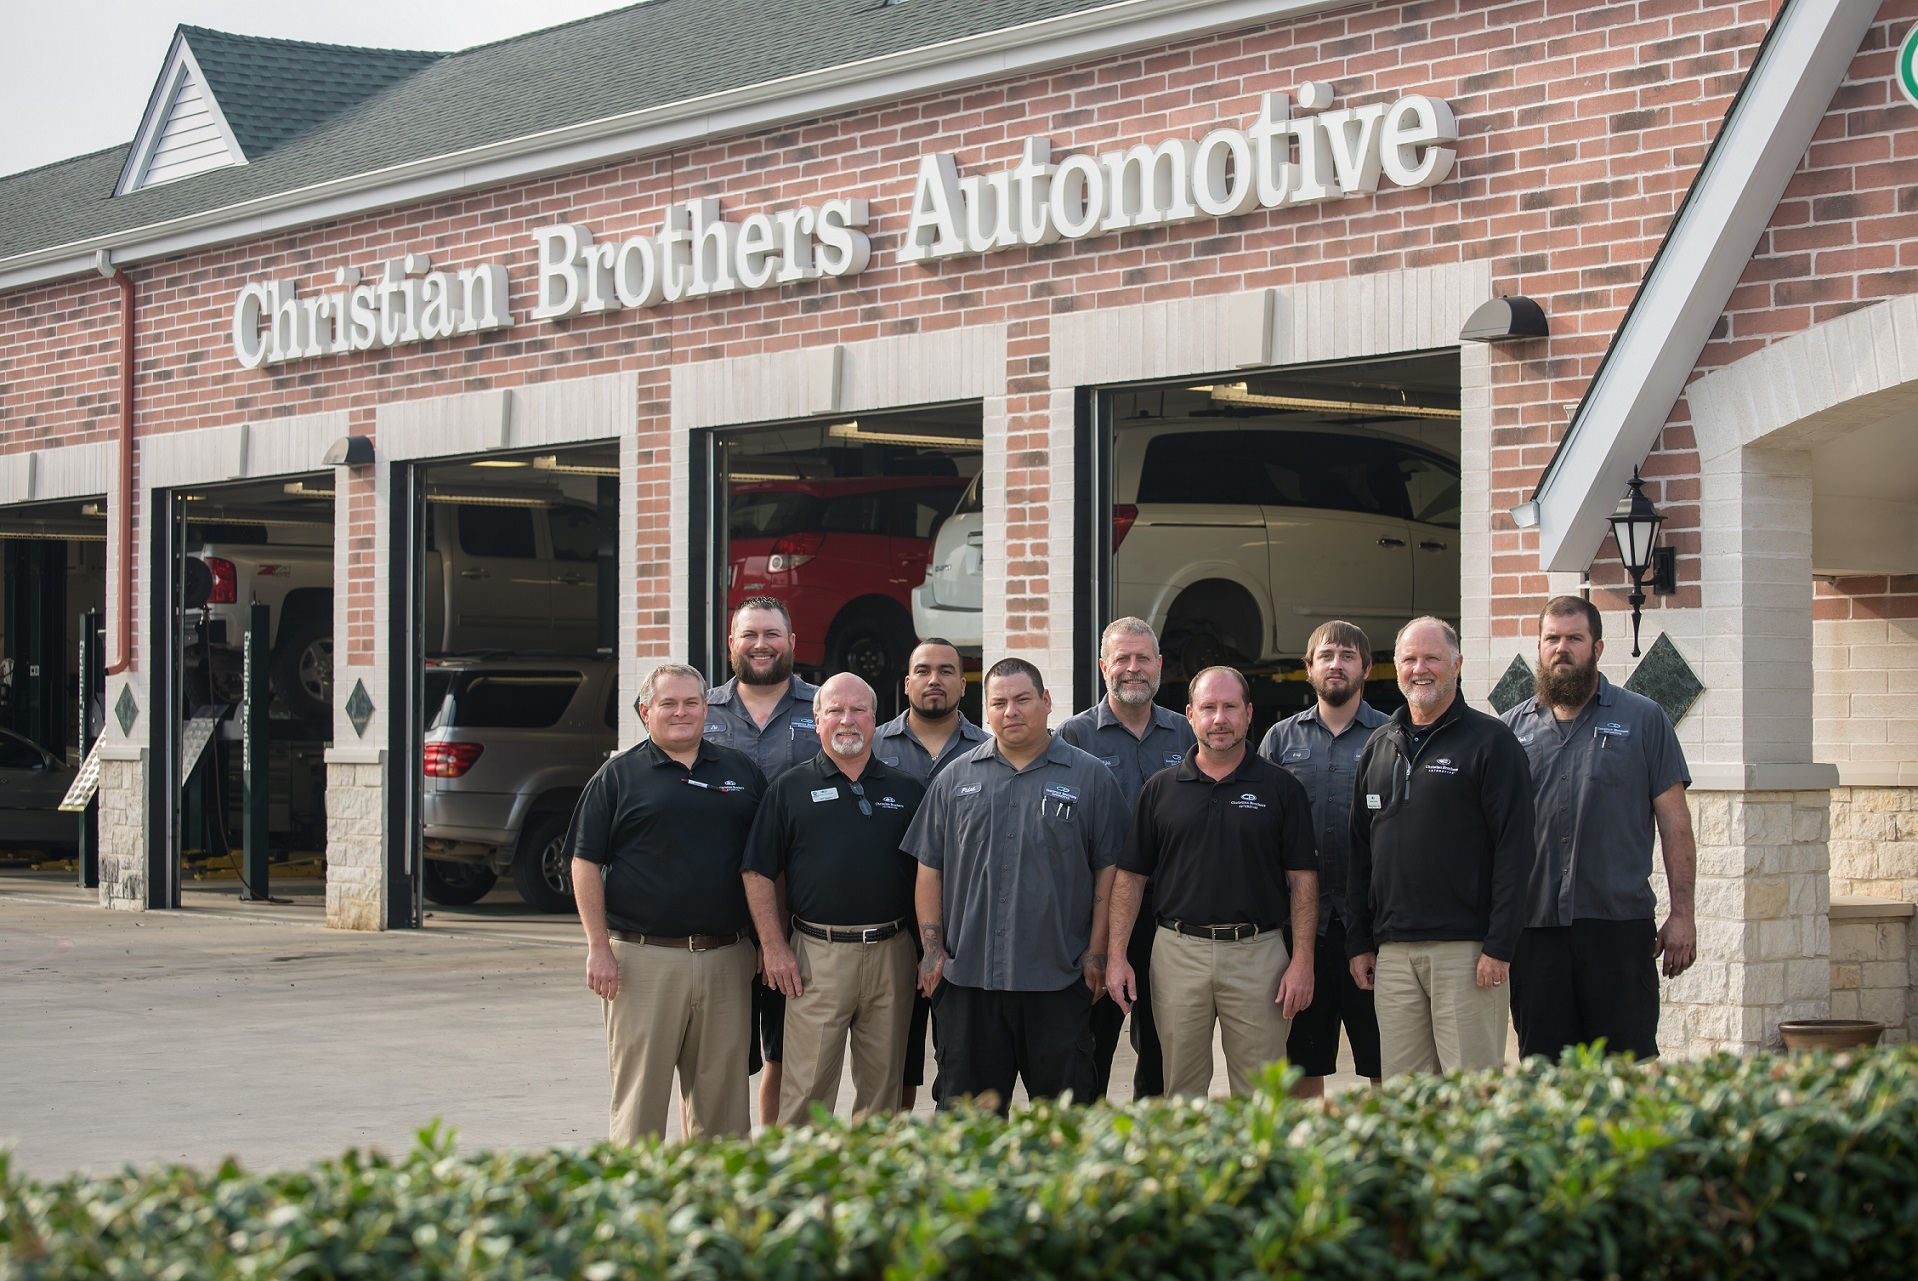 Christian Brother Automotive location in Waco, TX